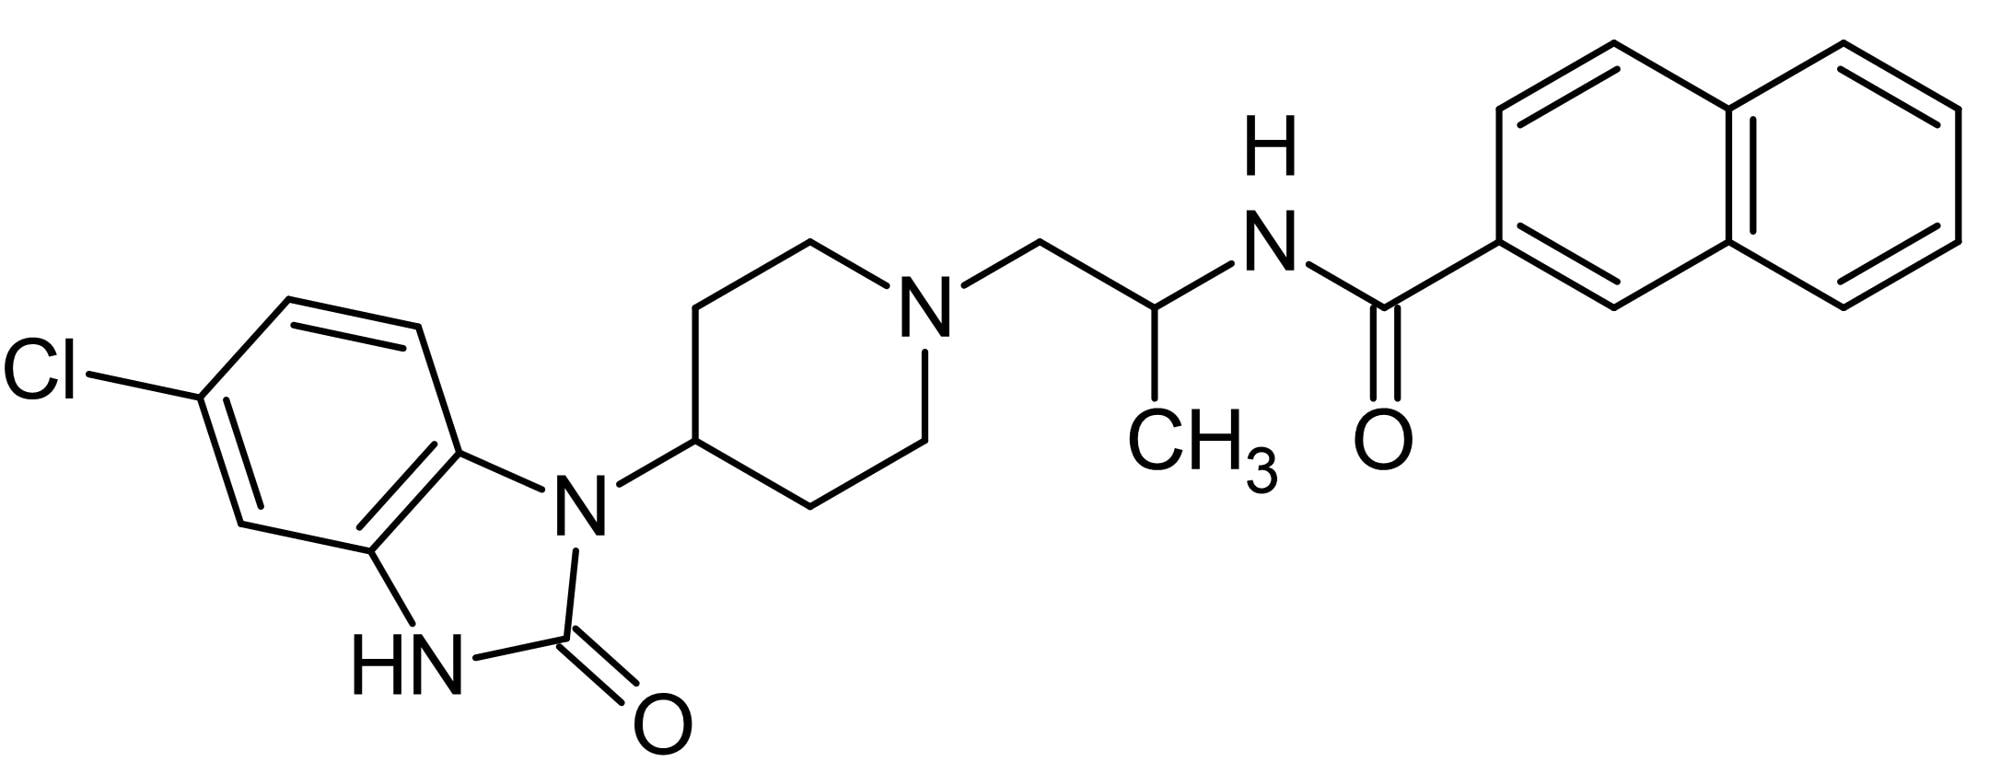 Chemical Structure - VU0155069, PLD1 inhibitor (ab145225)